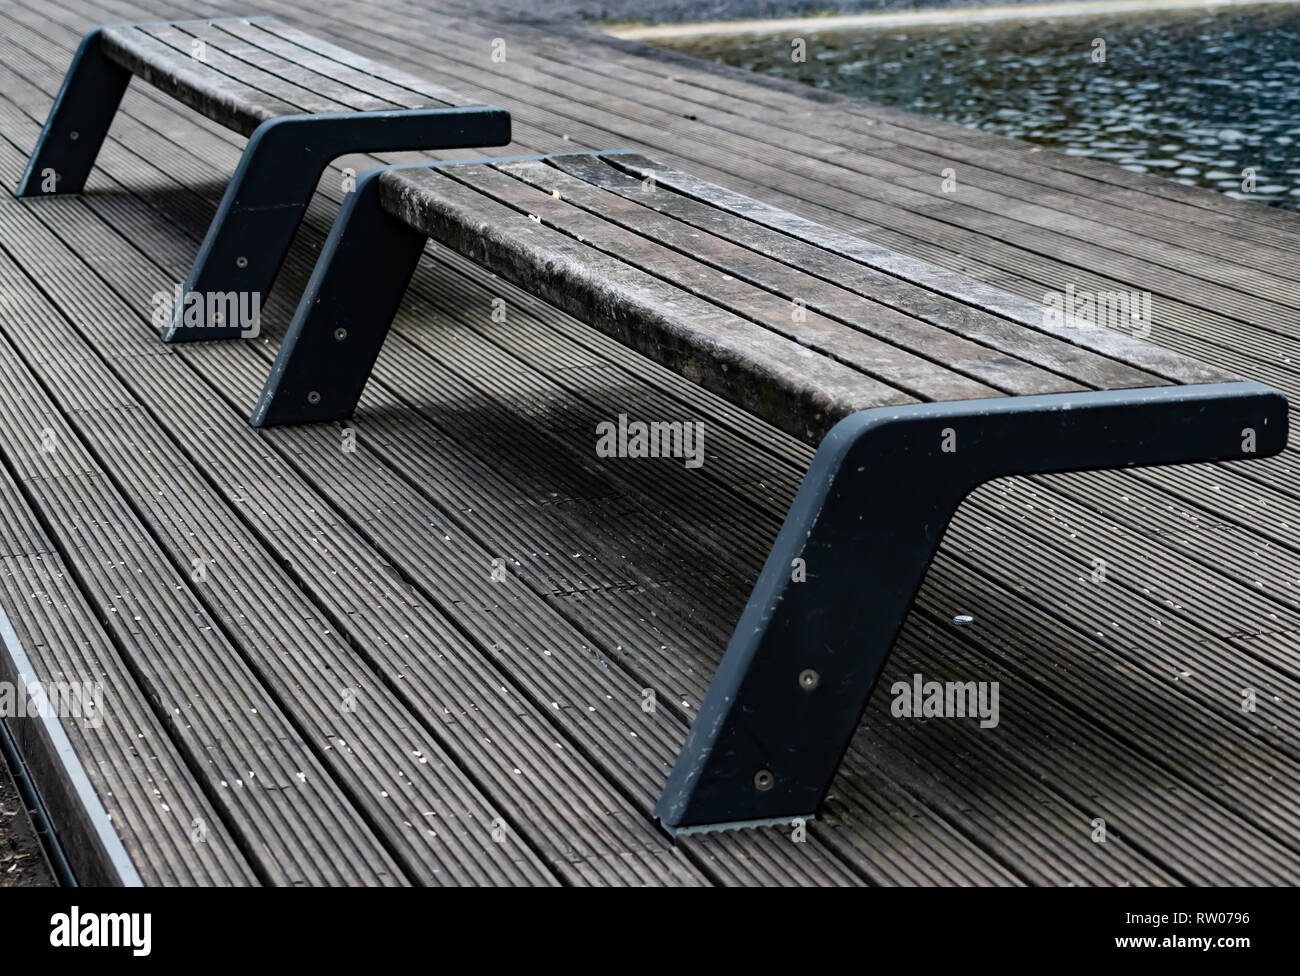 Park benches overlooking stream in Essen, Germany - Stock Image